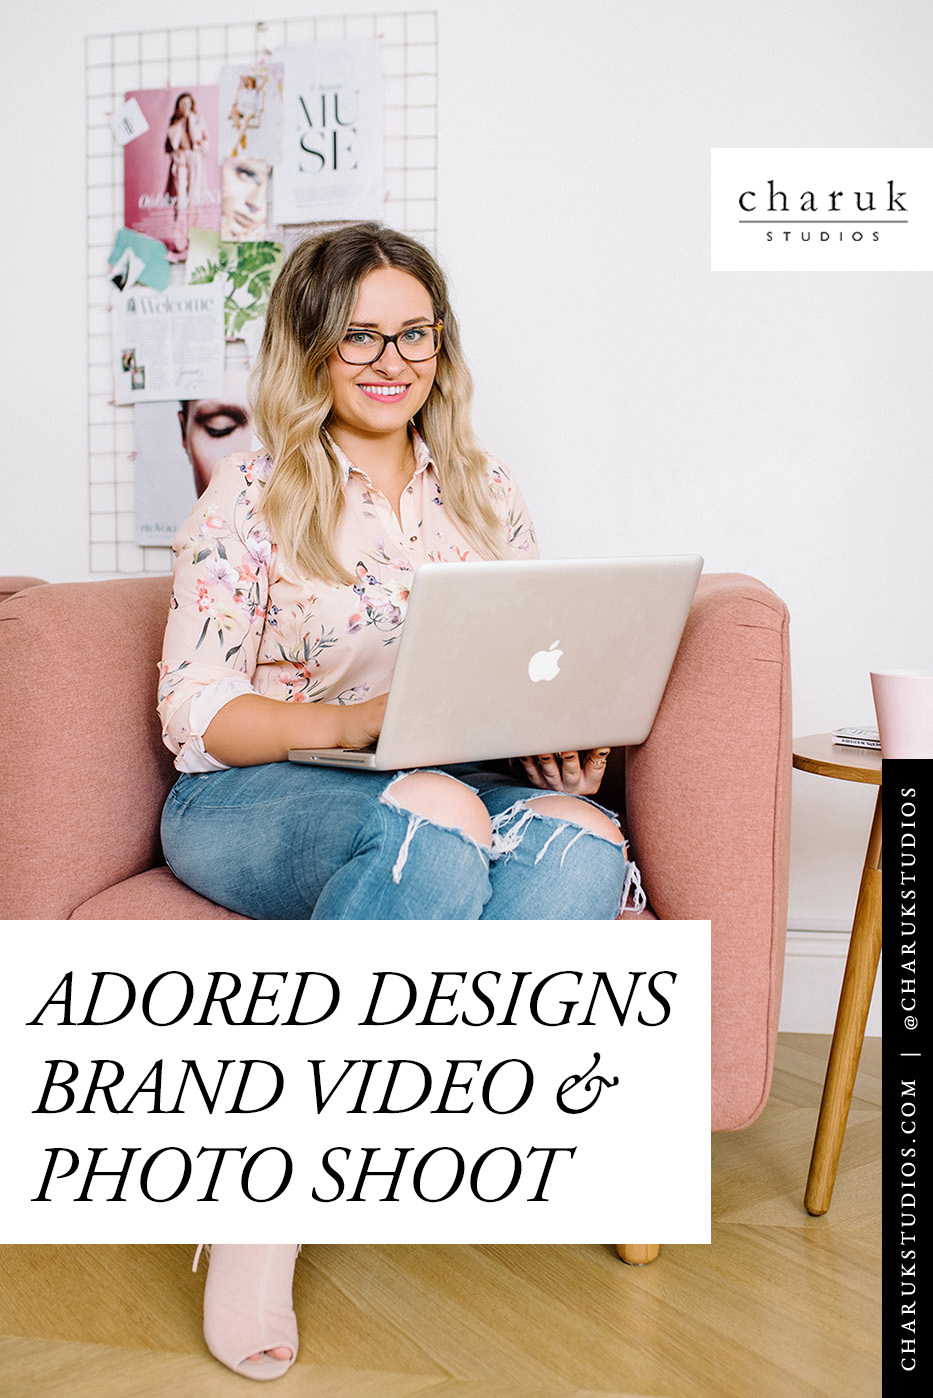 Adored Designs Brand Video and Photo Shoot by Charuk Studios